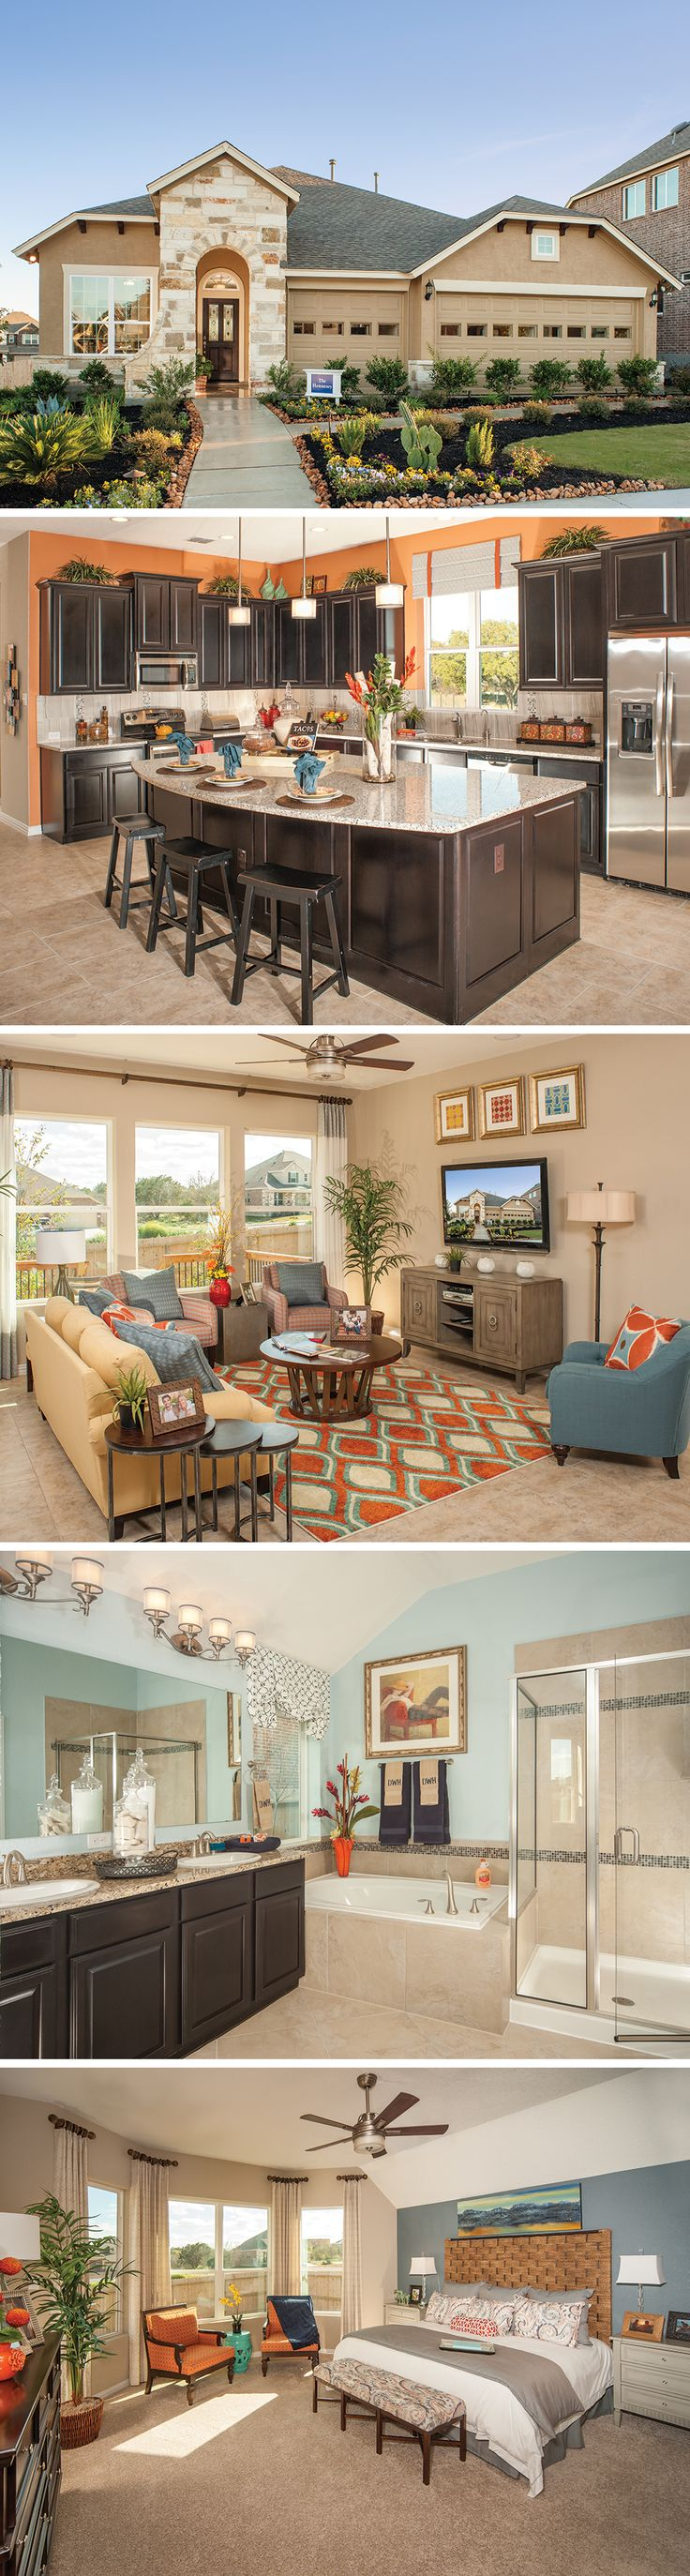 Customize The Hennessey floor plan in San Antonio, TX to fit your family's lifestyle! This plan includes a 3-car garage, study, dining room and a beautiful Owner's Retreat with a massive walks in closet. Some available options include: fourth bedroom downstairs with 3rd bath in lieu of a living room and a second-floor Bonus Room with half or full bath.